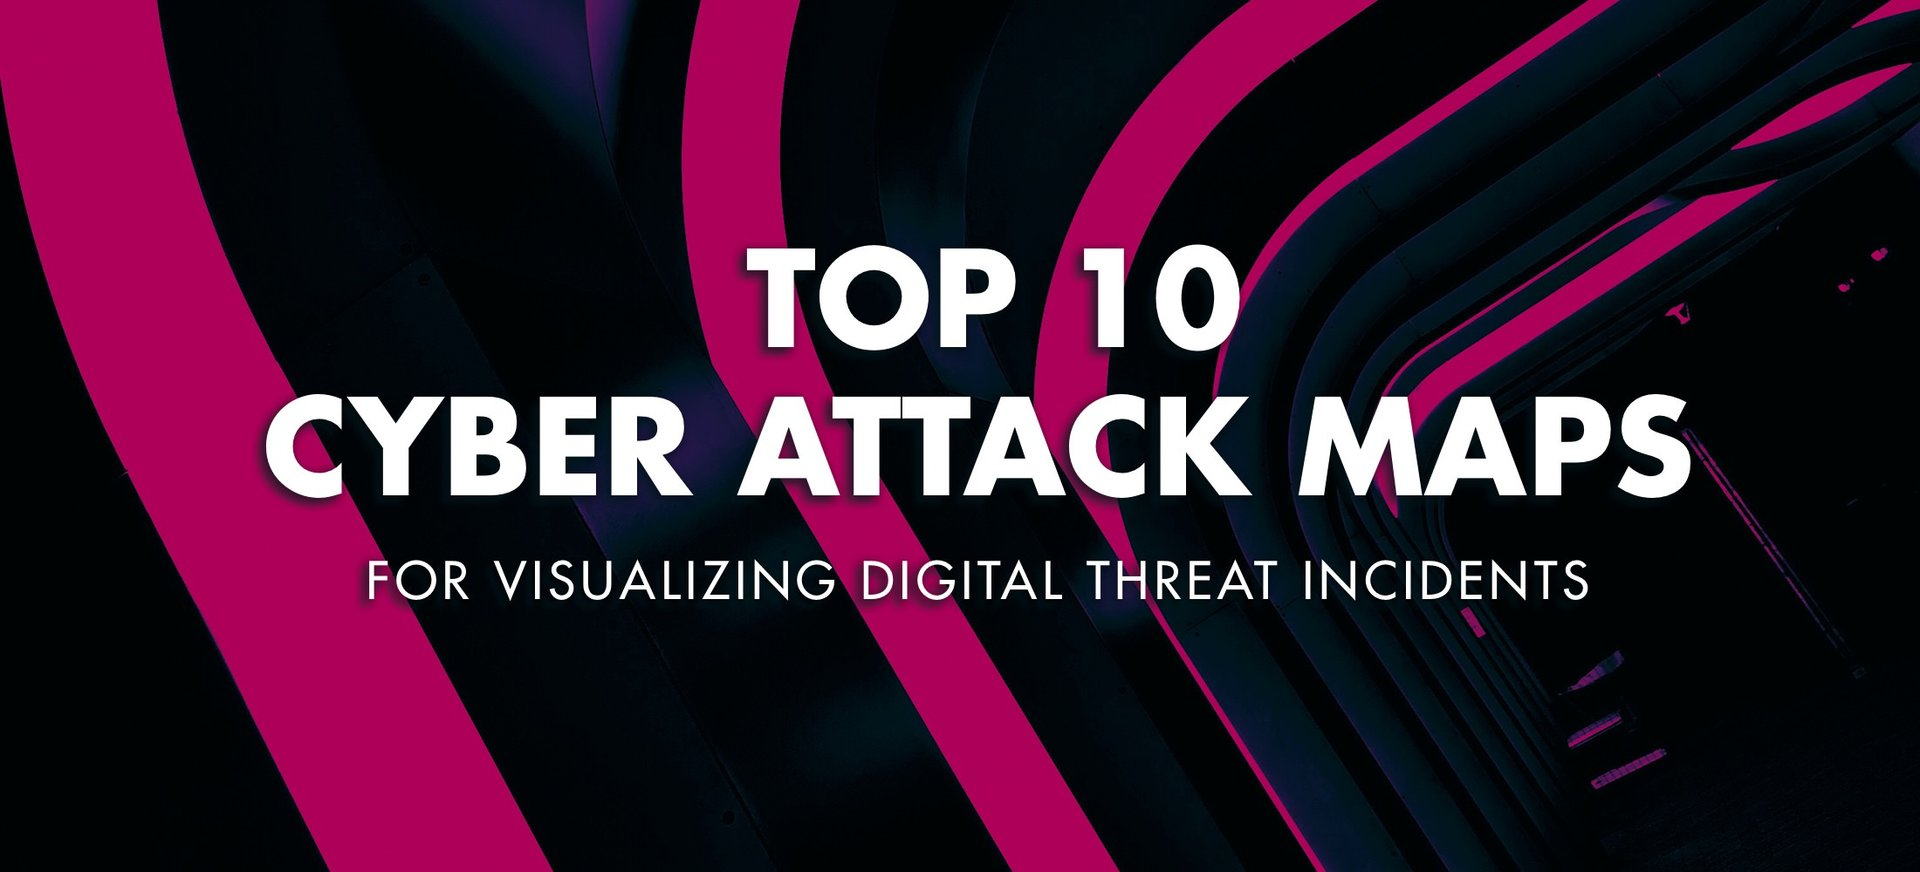 Top 10 Cyber attack maps to track cybersecurity incidents